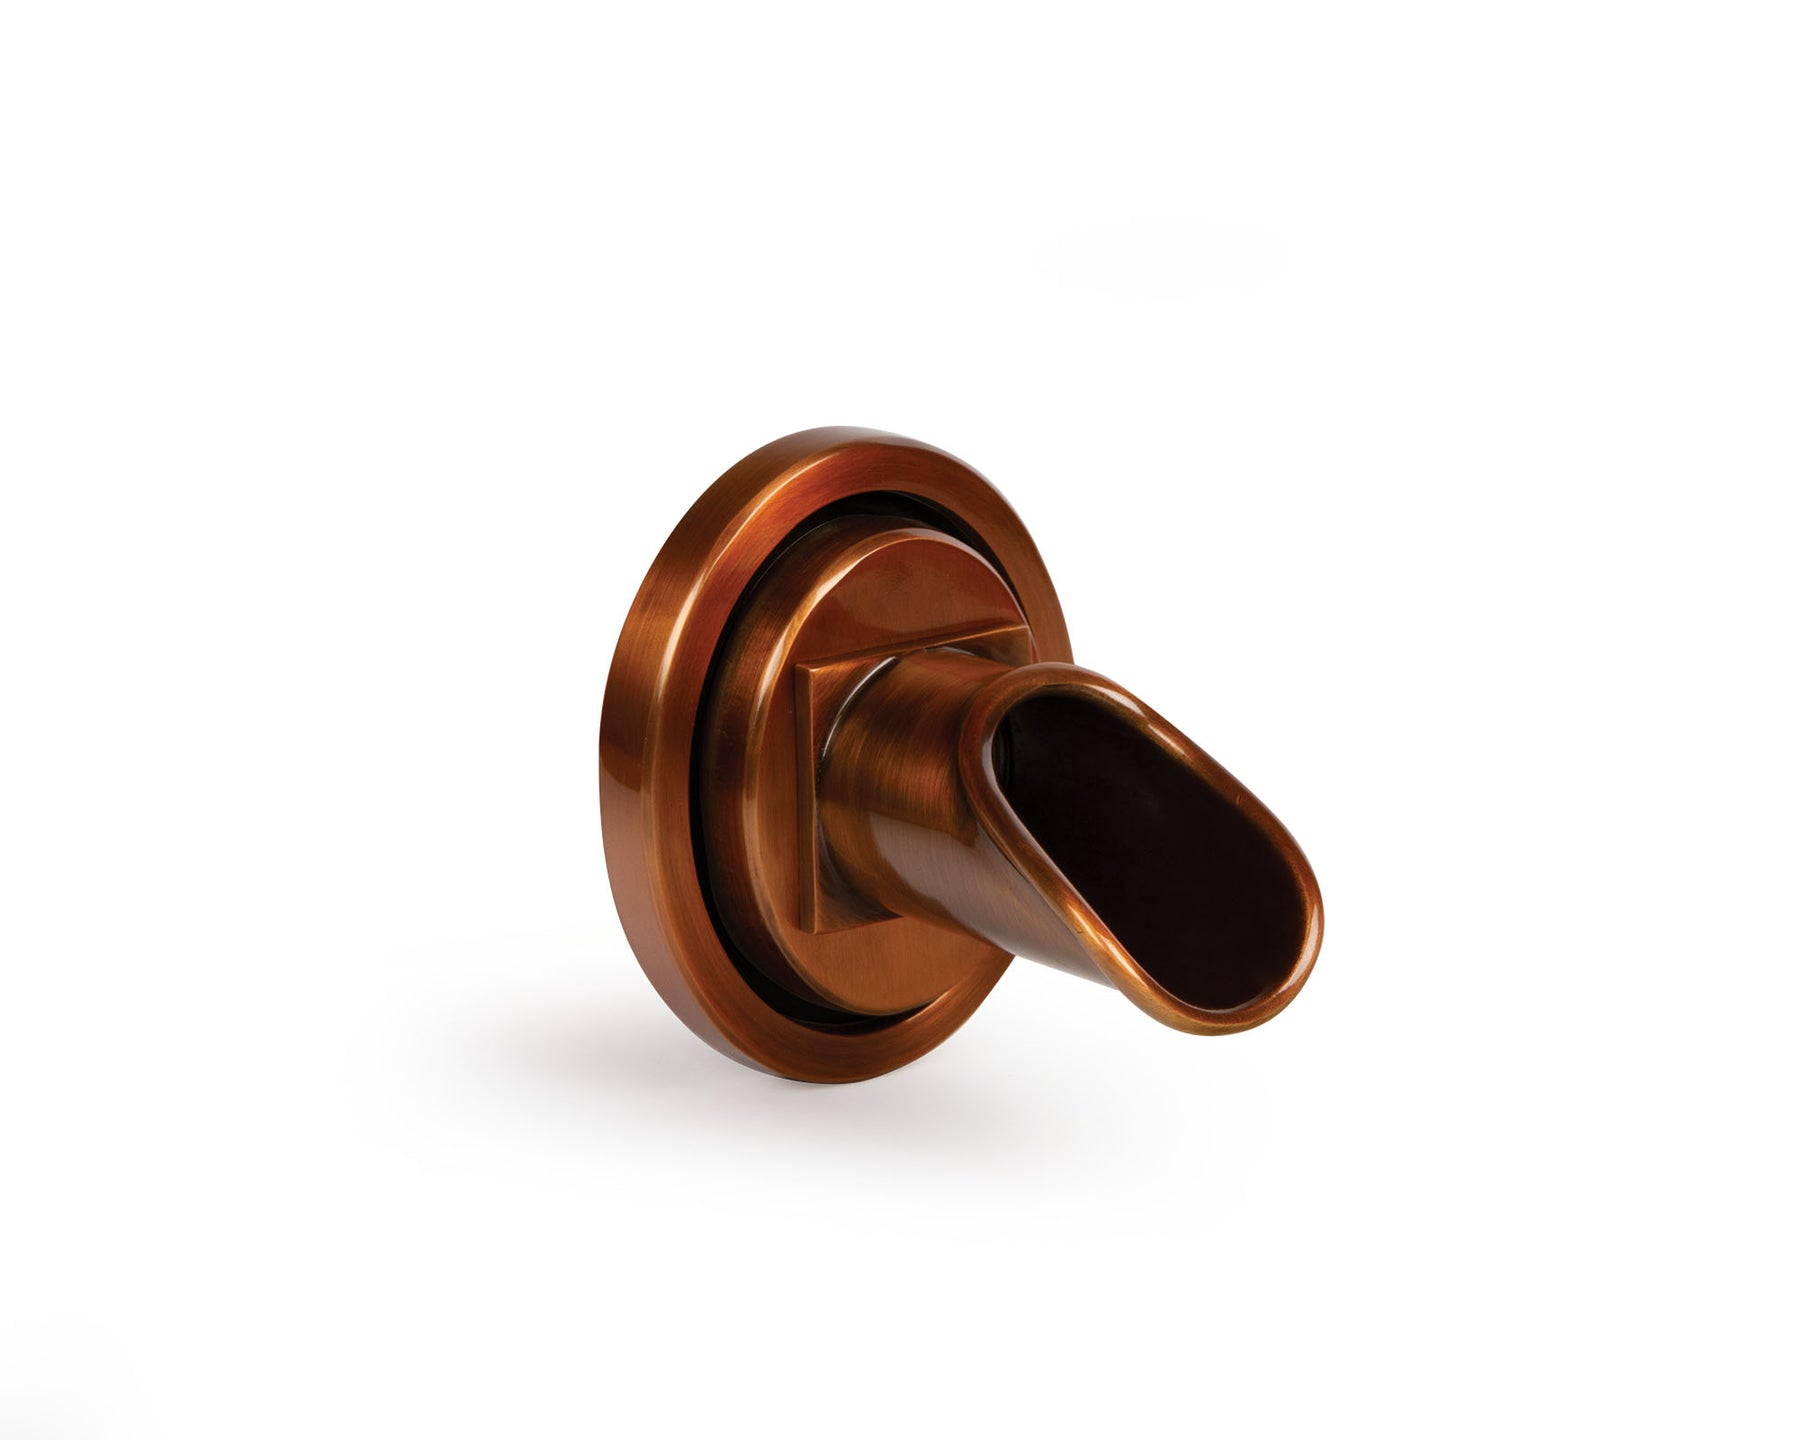 Atlantic Copper Finish Ravenna Wall Spout (WSCR-O)